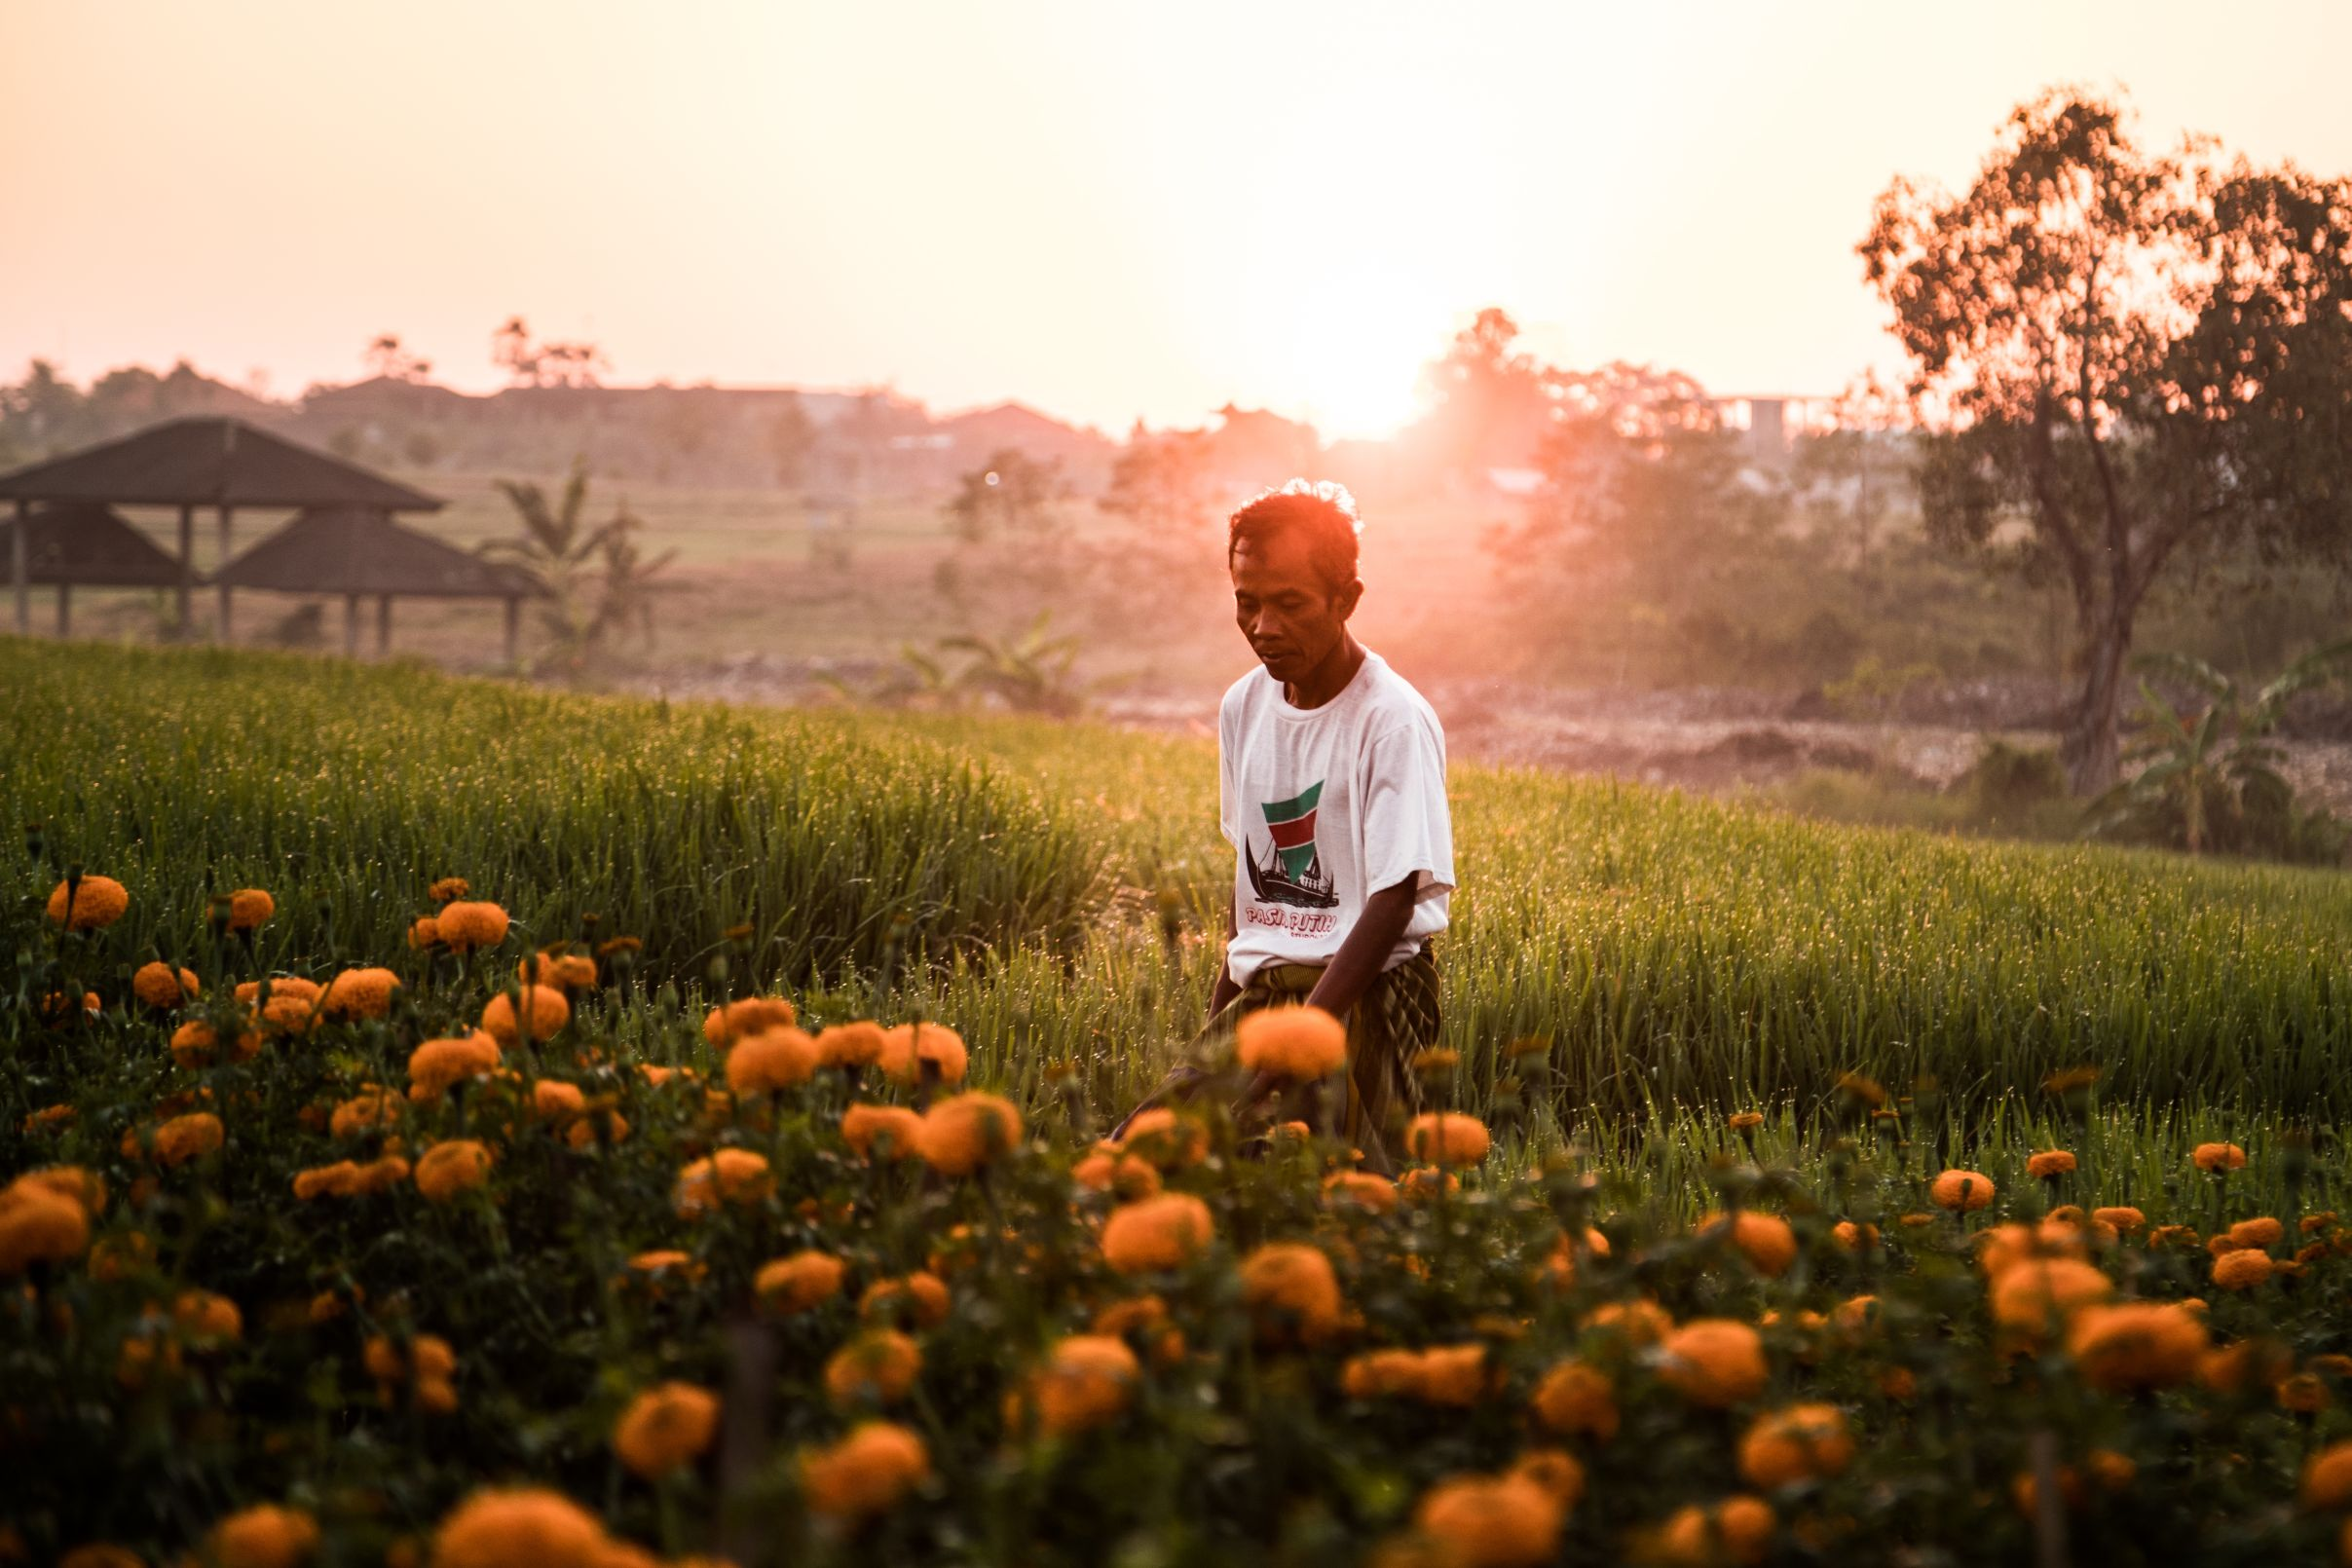 Man standing in balinese rice field during at sunset.